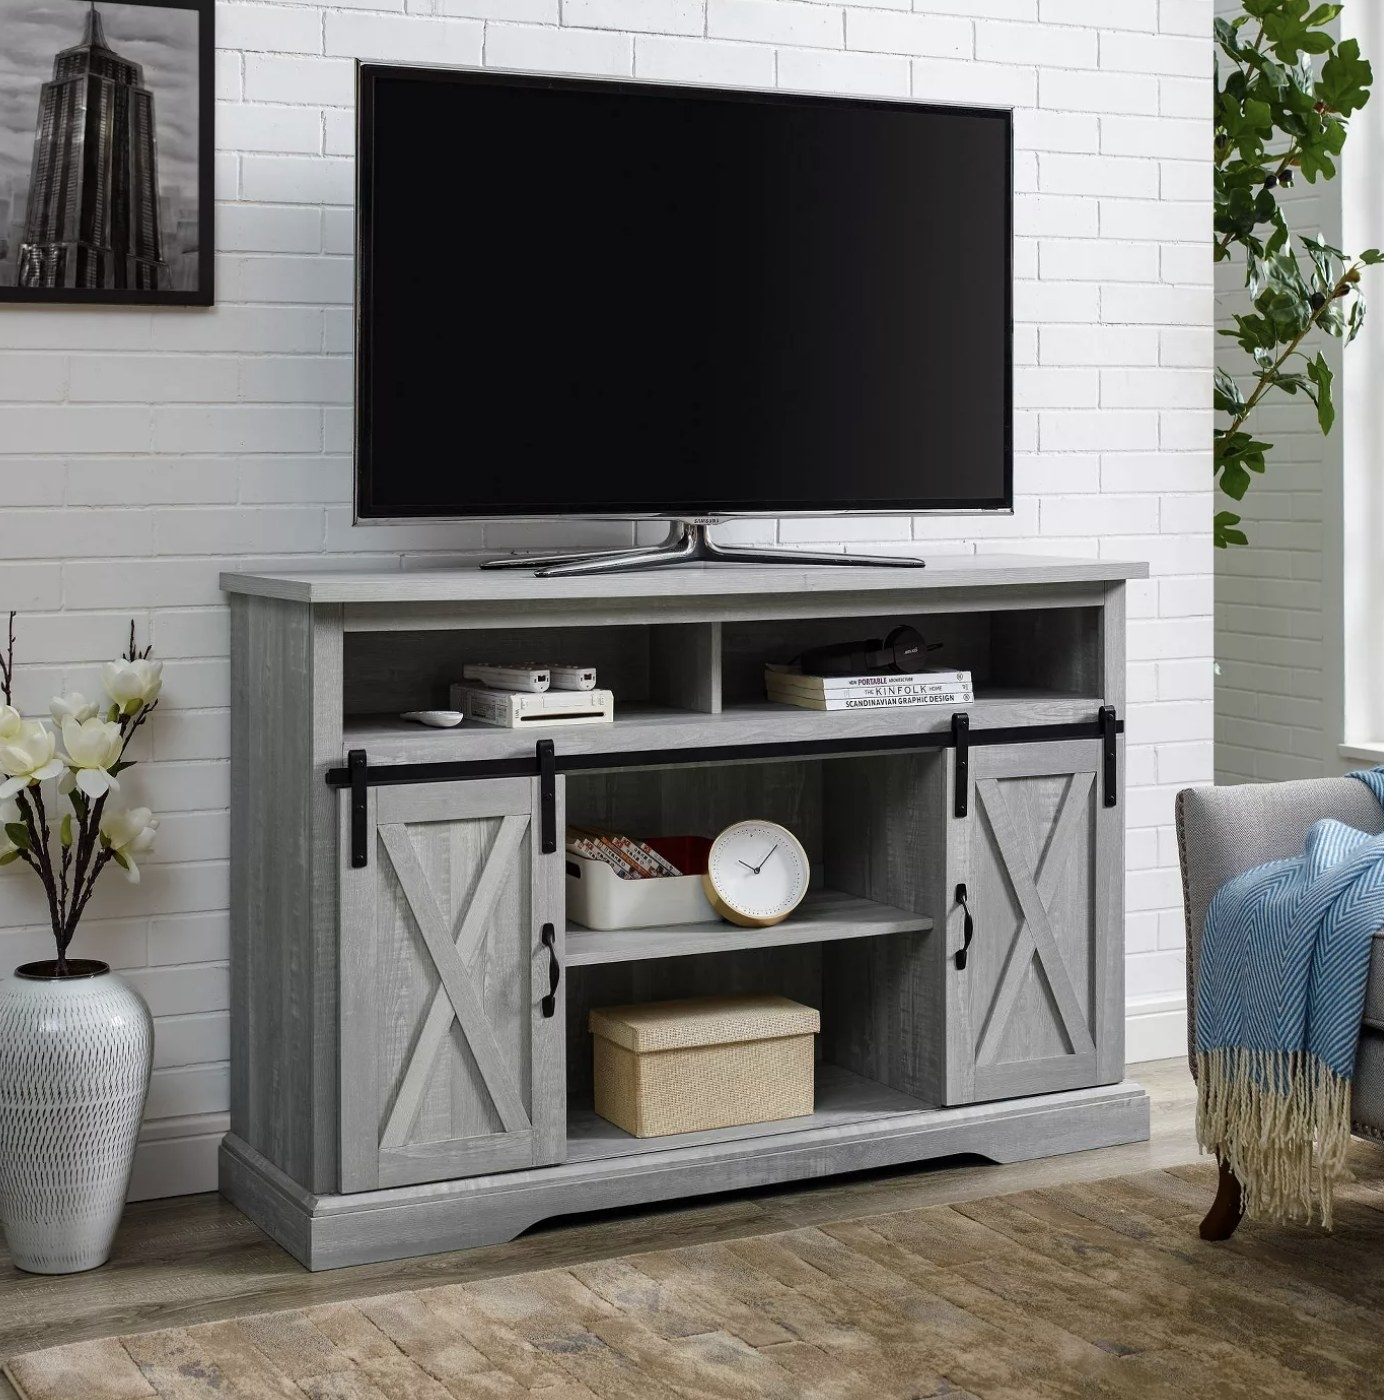 The light grey wood TV stand